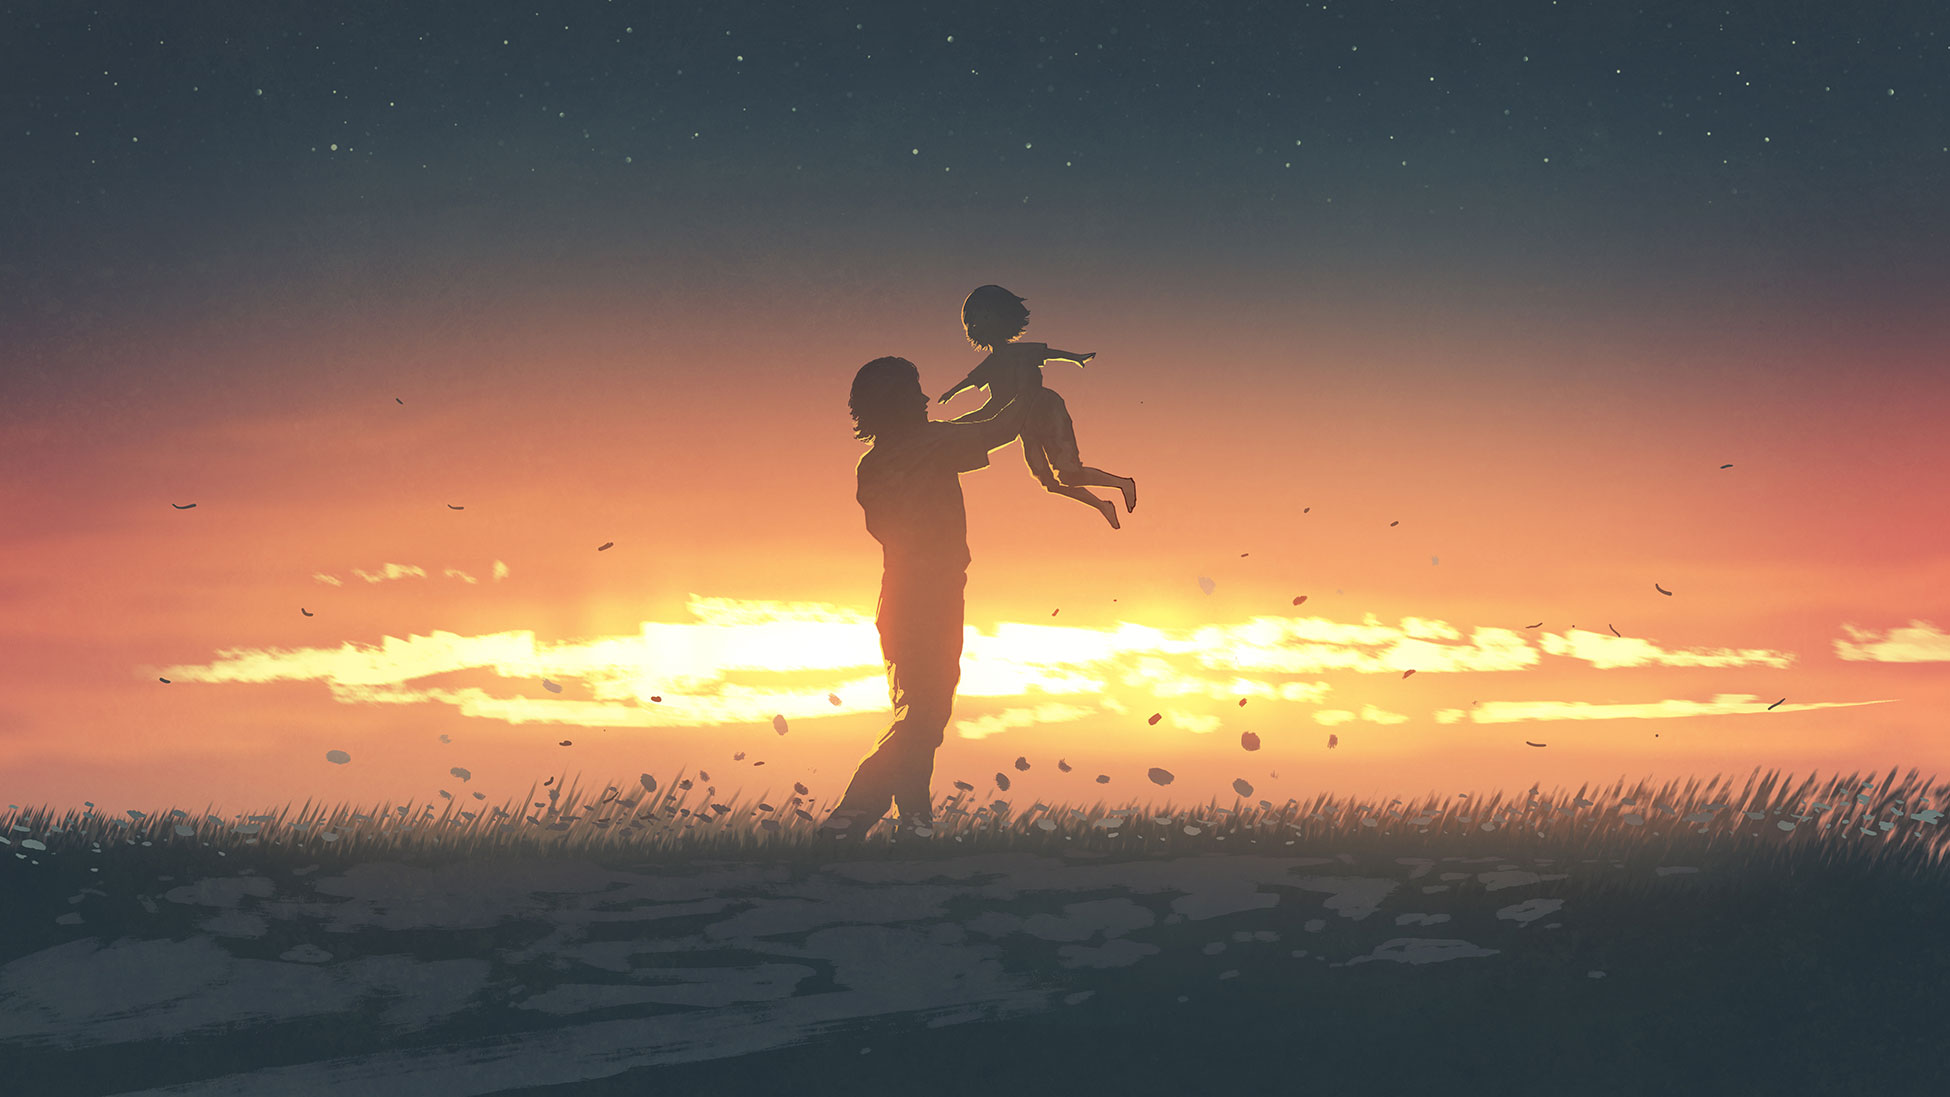 Illustration of parent holding child in the air